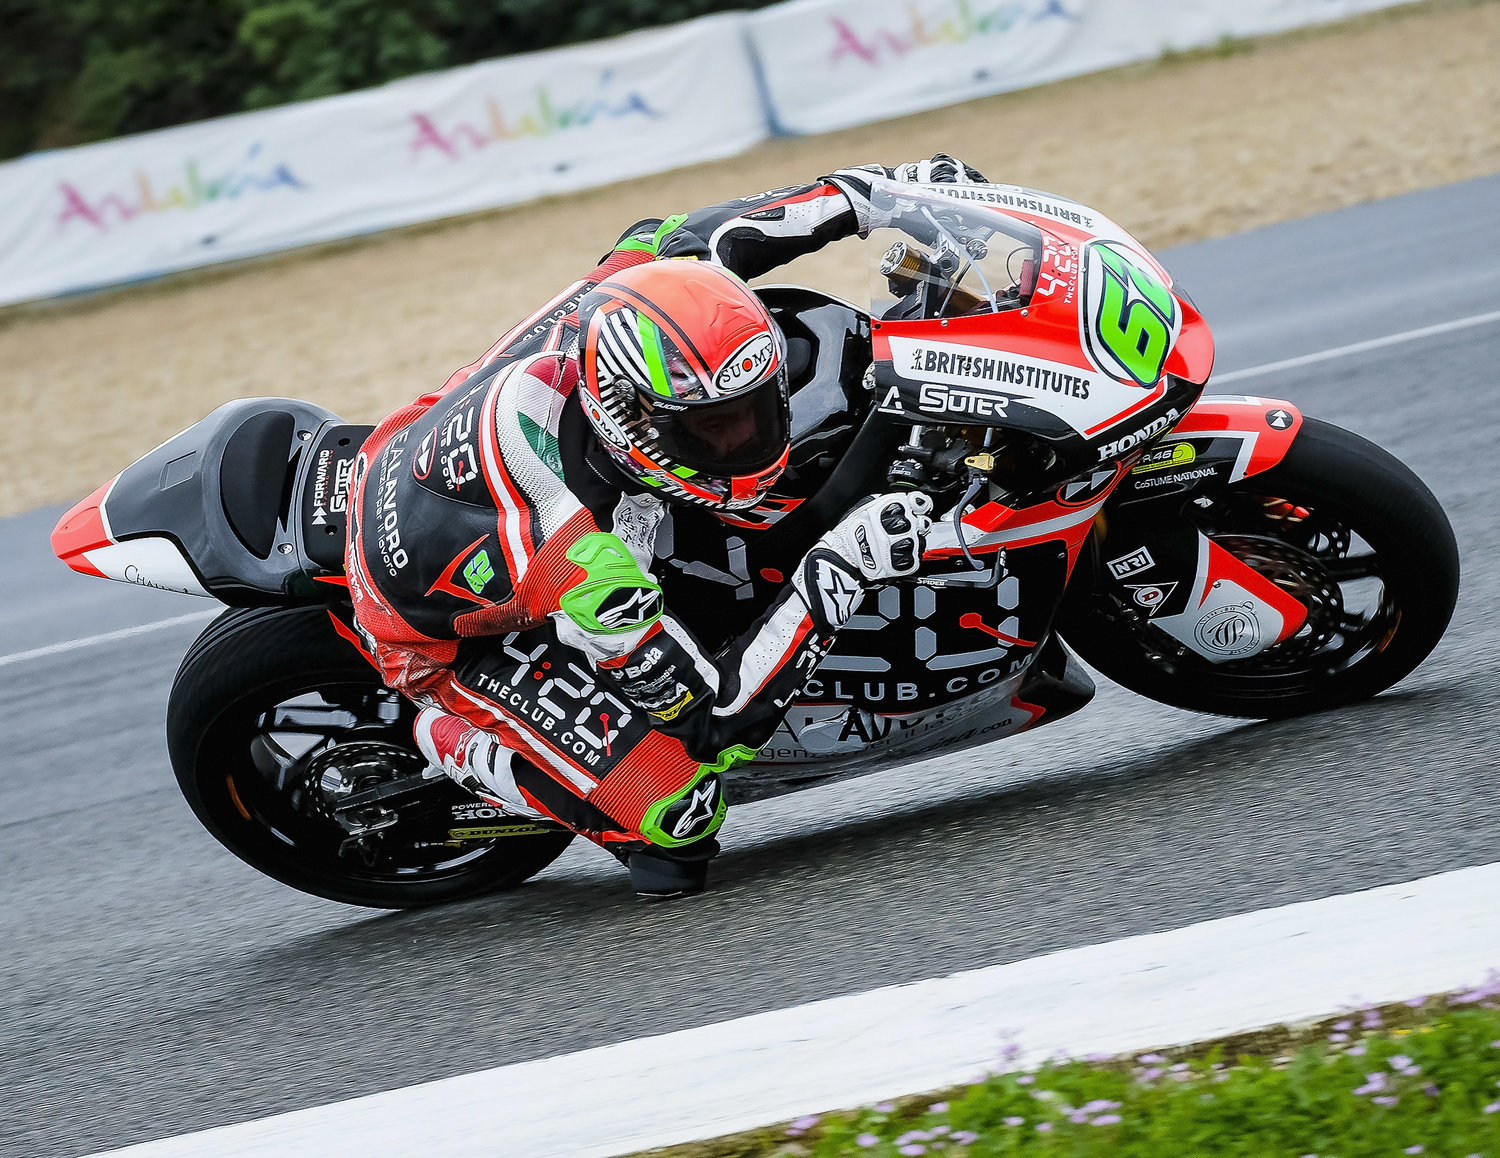 Test pre-season completed in Jerez for the Forward Racing Team